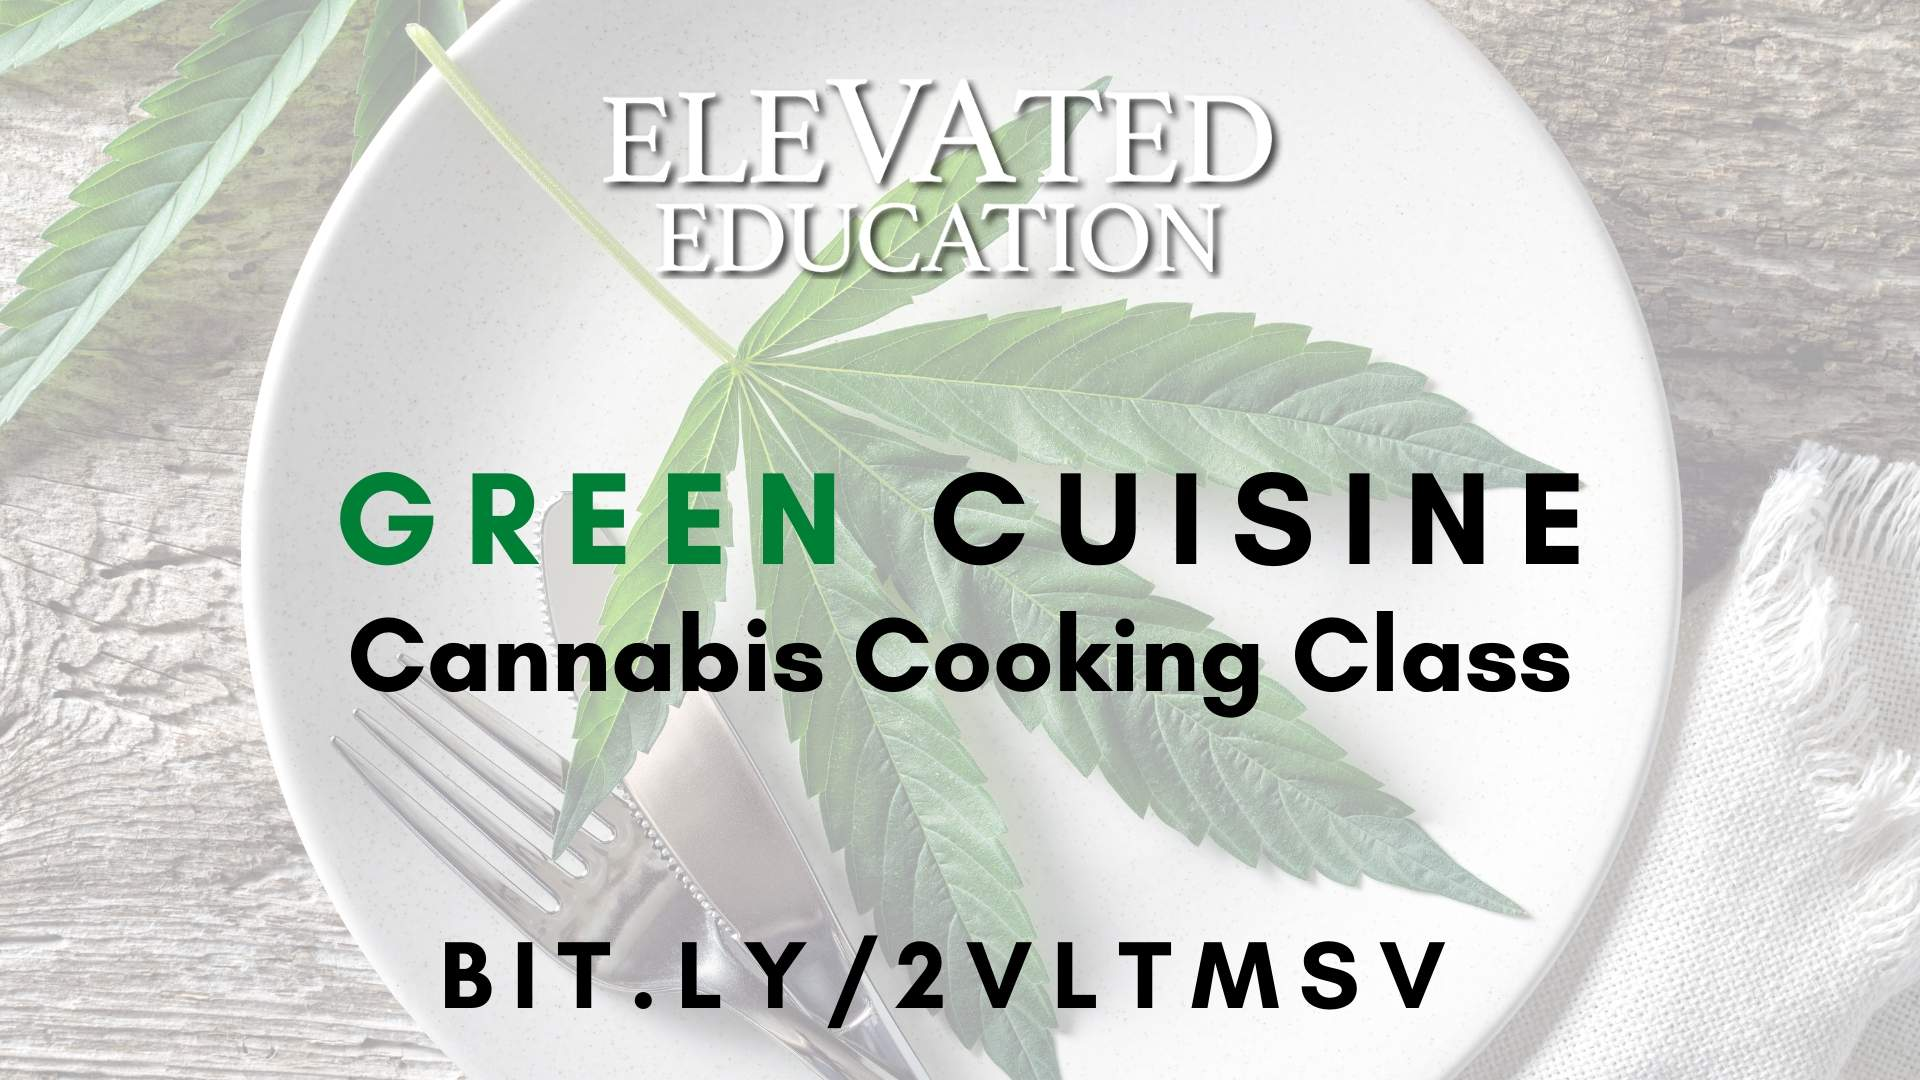 Green Cuisine Cannabis Cooking Class (Elevated Education)